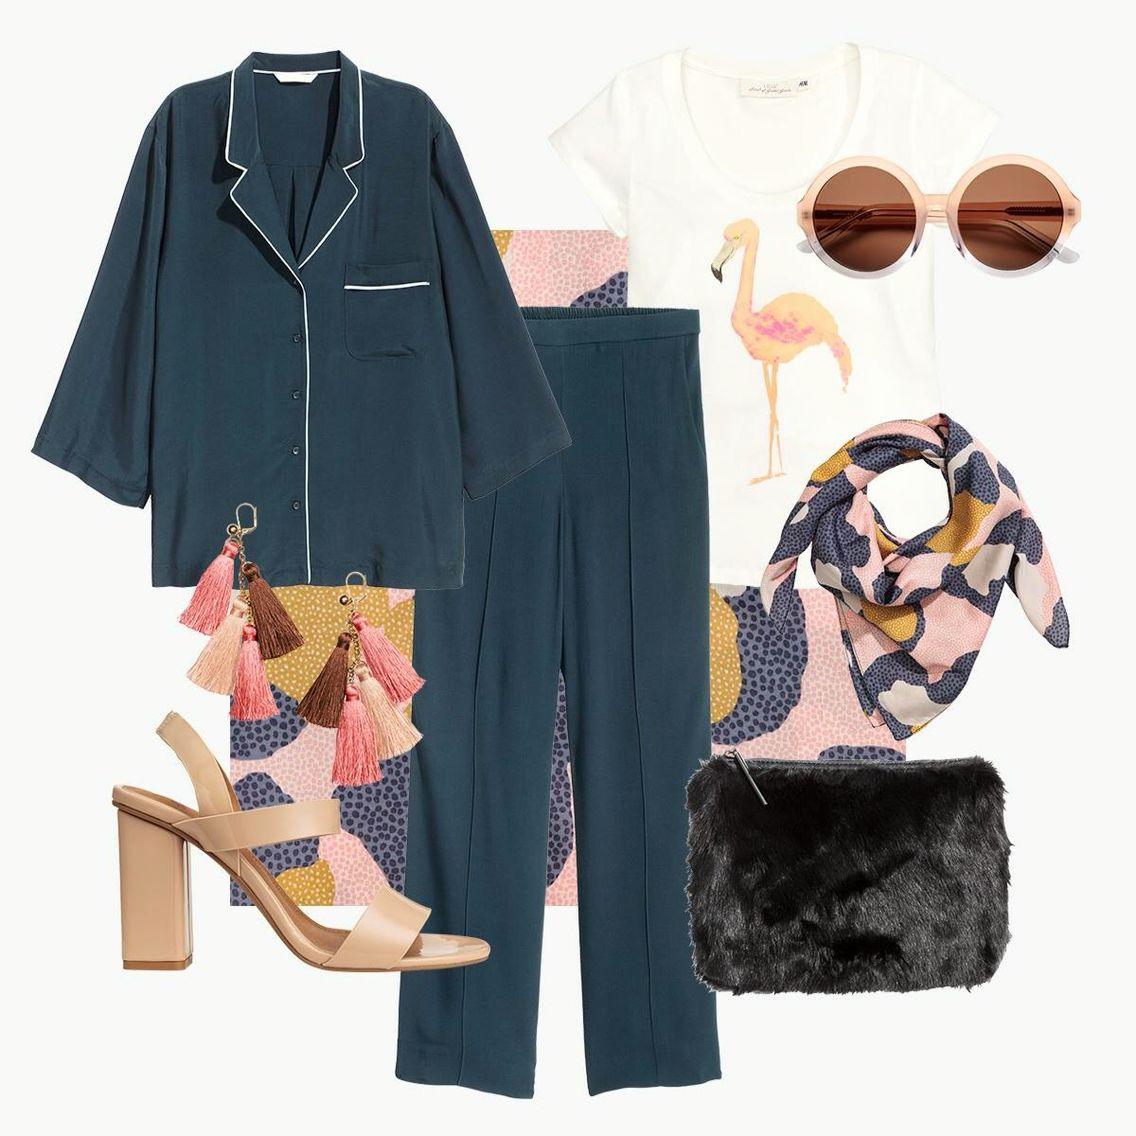 H&M is coming with this Pyjama look, perfect for us chronic sickies, we can now walk in style straight out the door or walk stylish through the hospital corridors hahaha